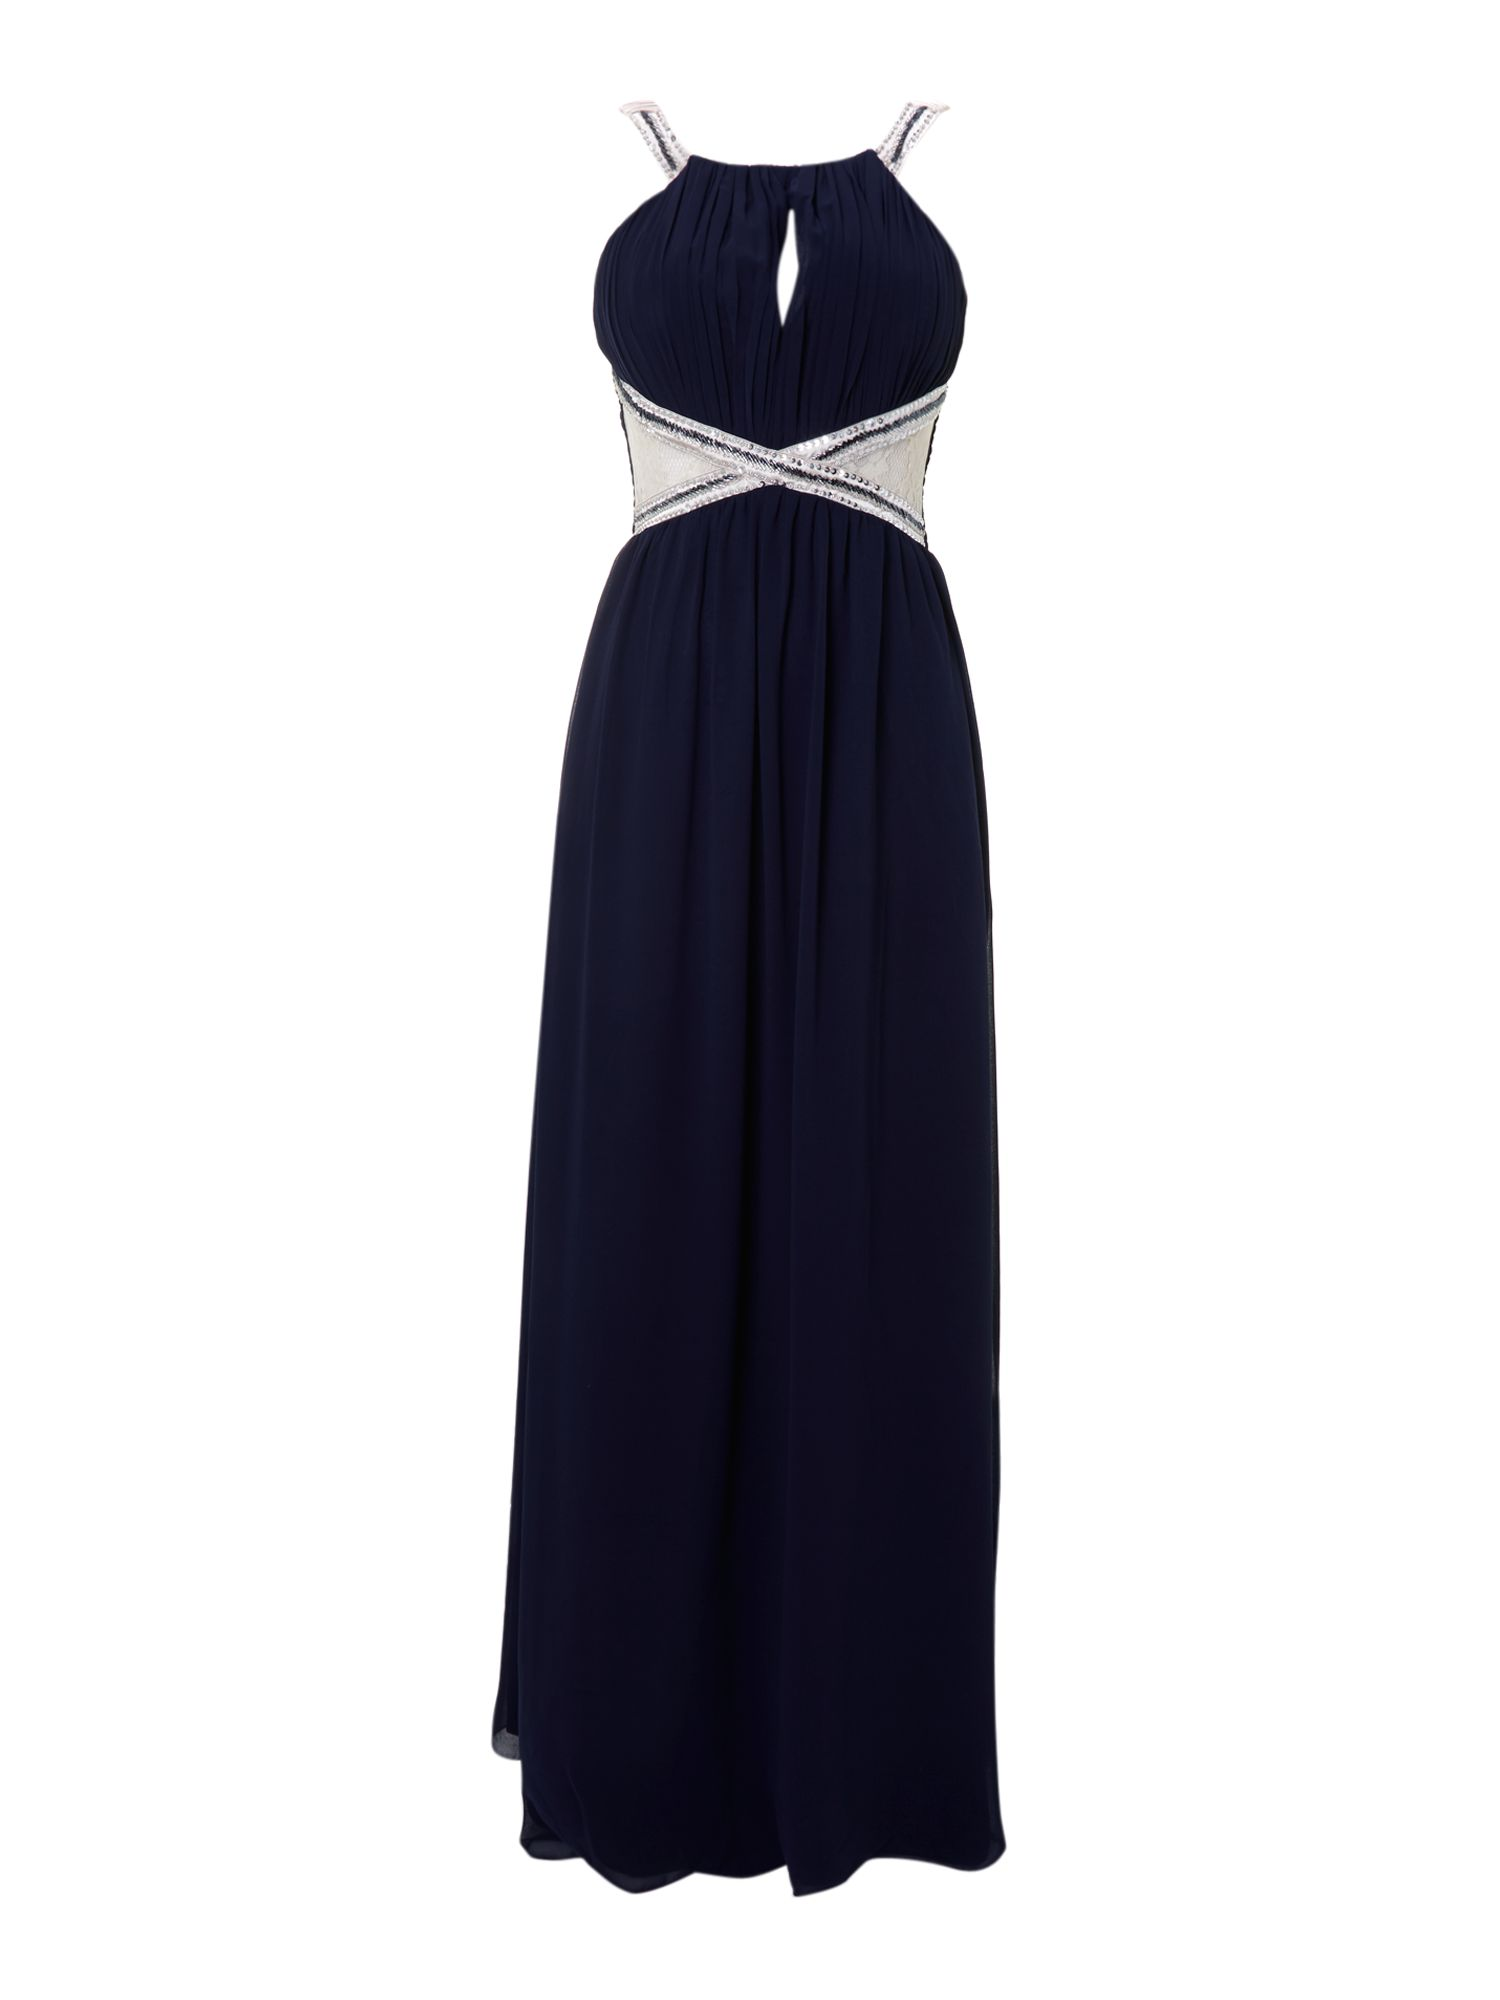 Lauren Pope maxi dress